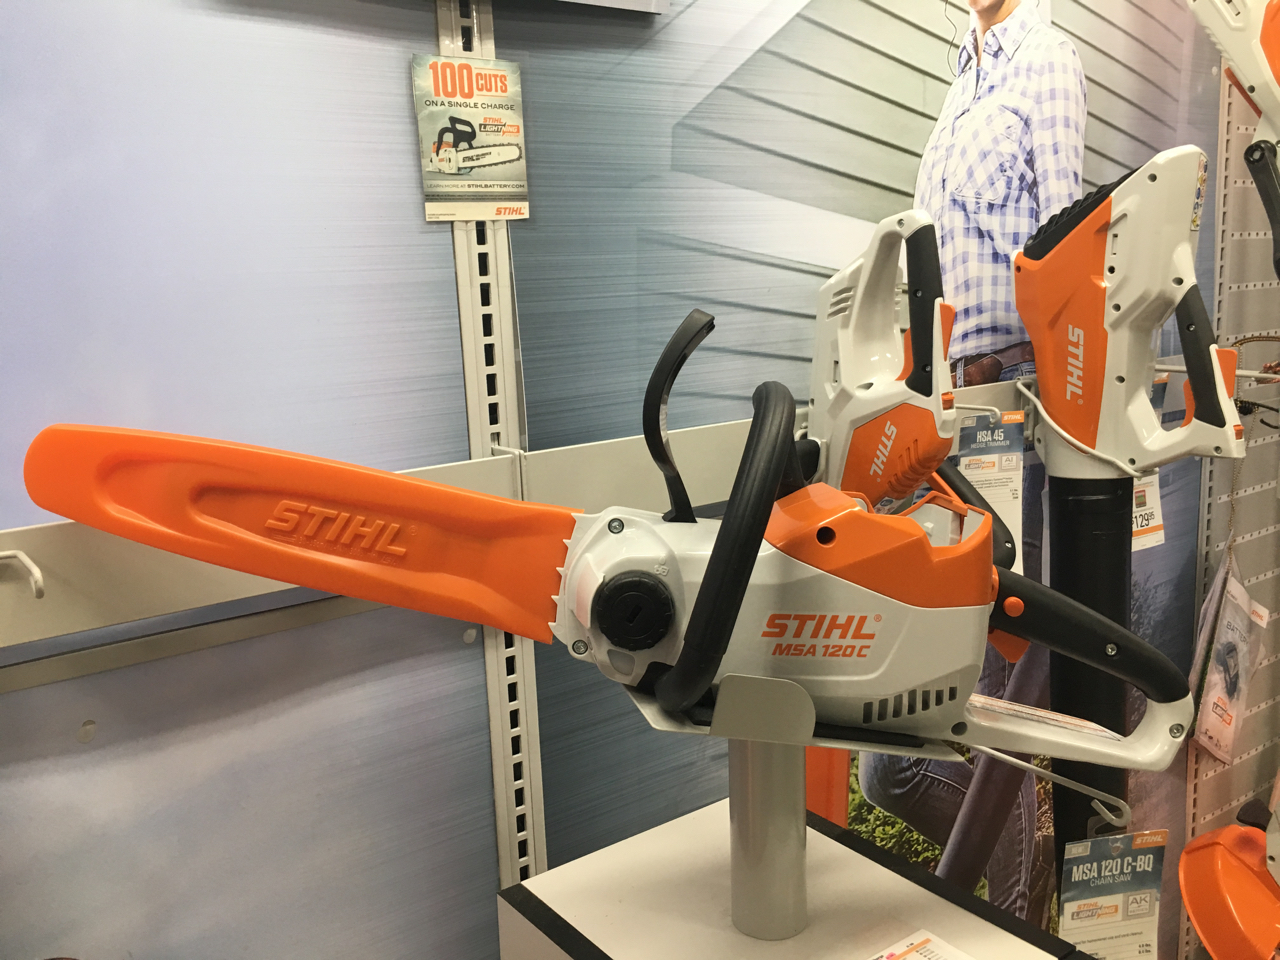 Chainsaws, weed wackers -  oh my! Great gifts for any homeowner!